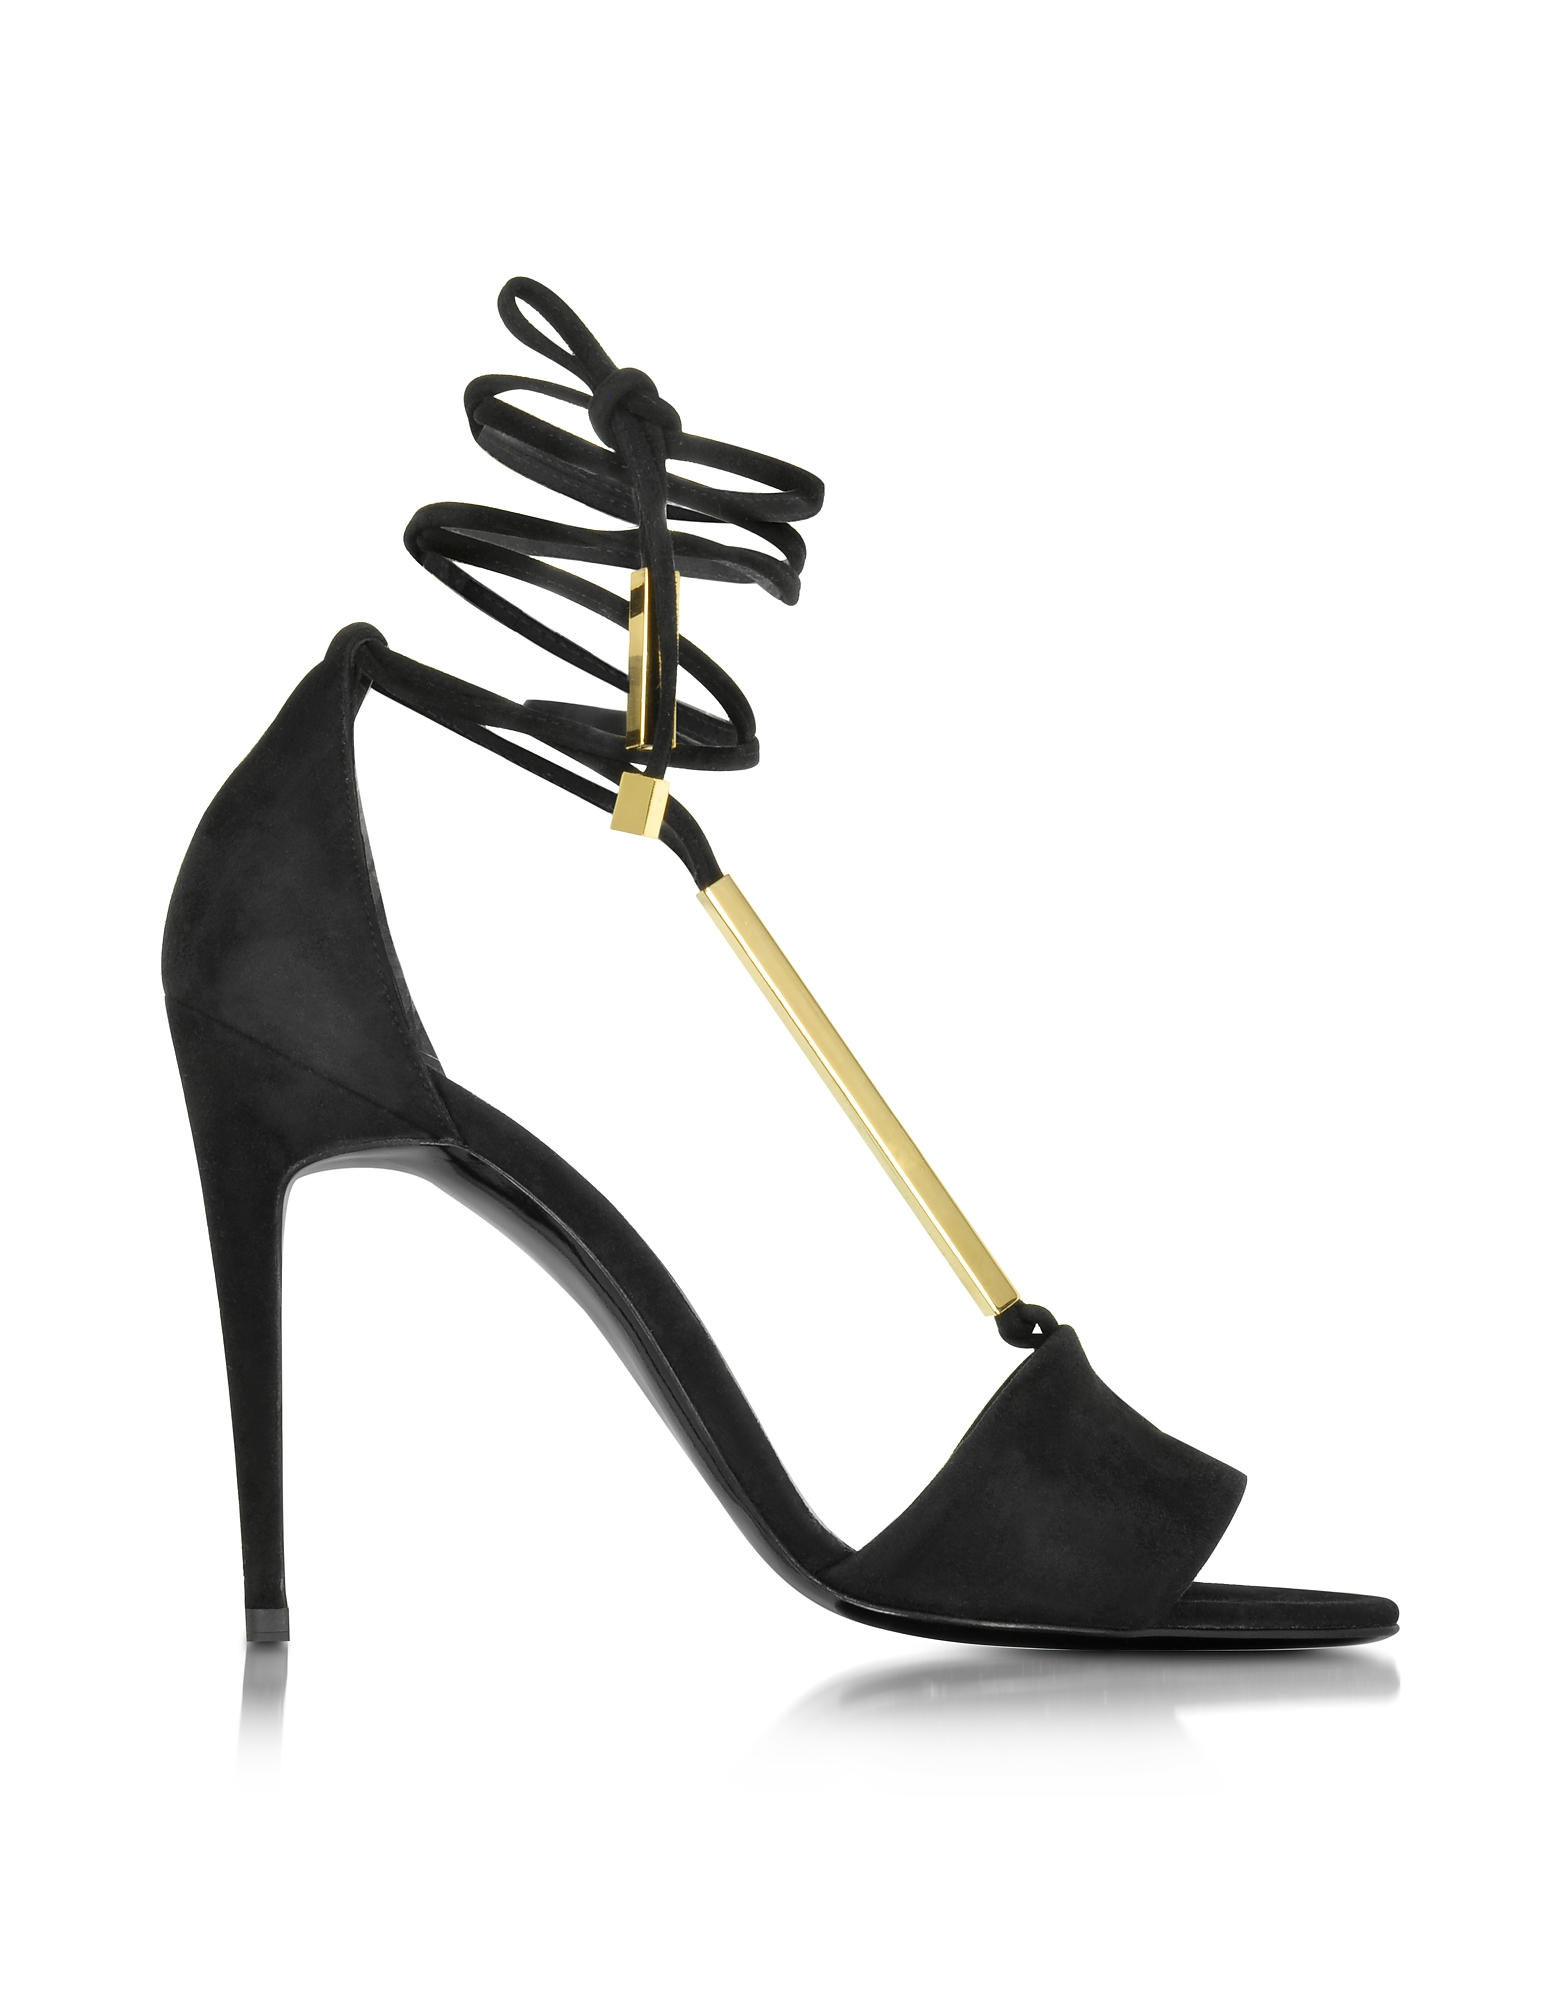 Pierre Hardy Shoes, Blondie Black Suede Sandal